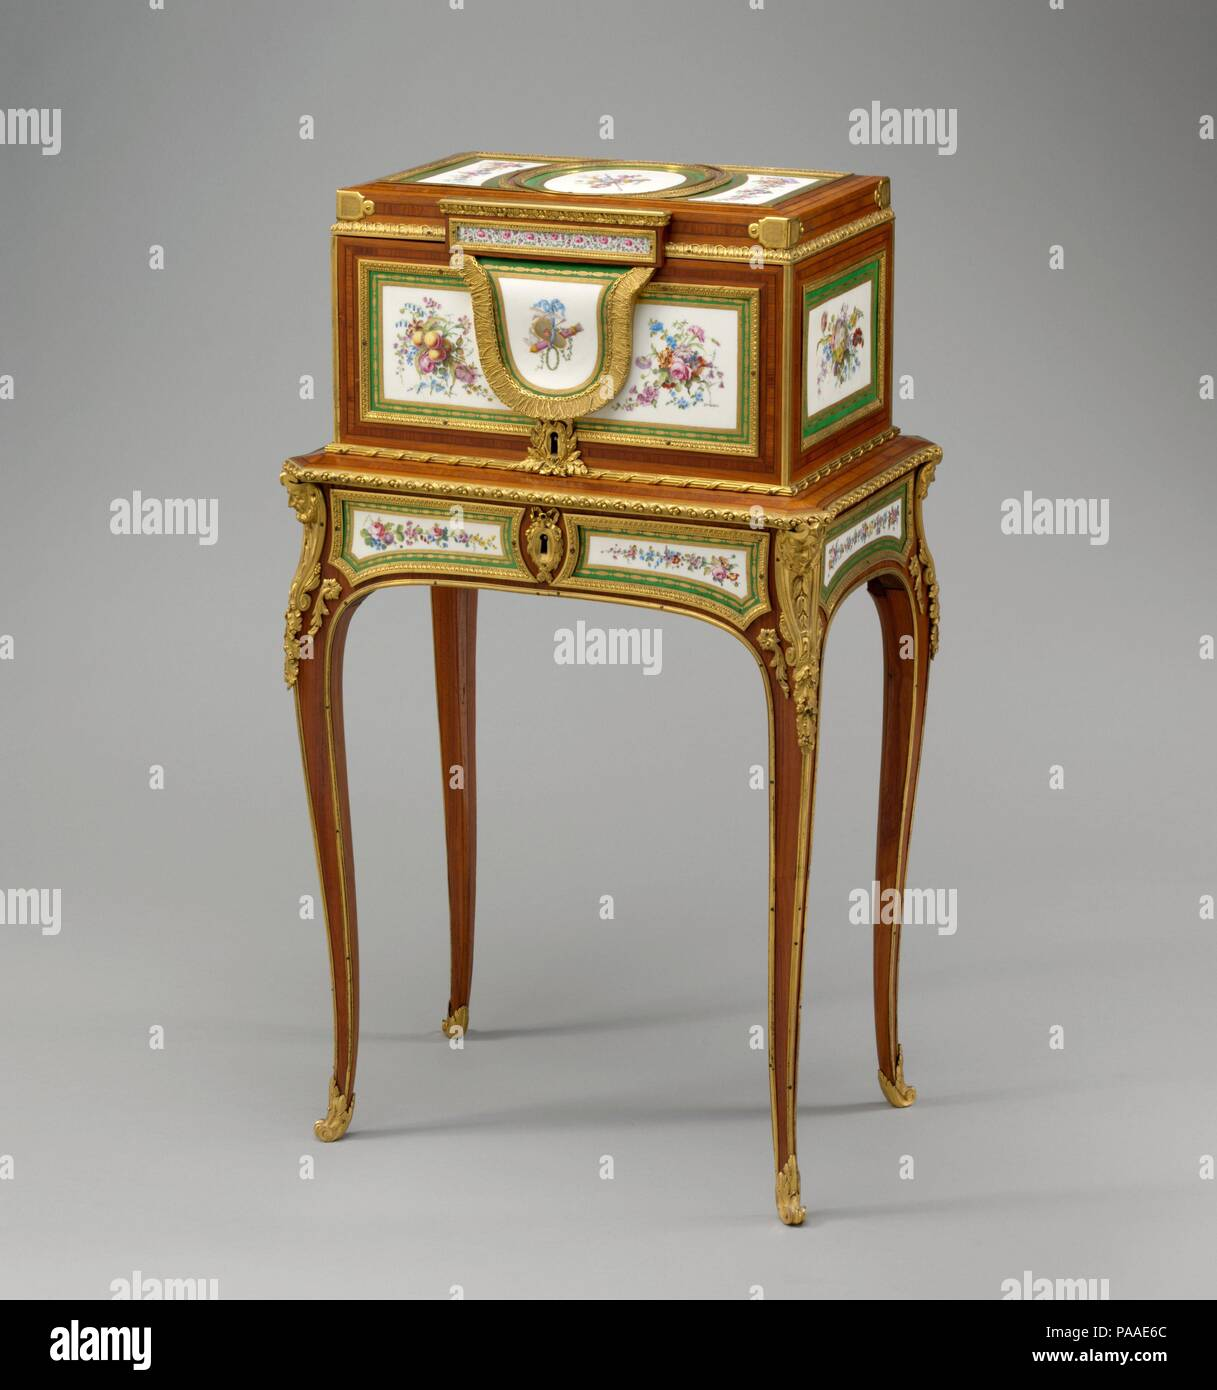 Jewel coffer on stand (petit coffre à bijoux). Culture: French, Paris and Sèvres. Decorator: Eight plaques decorated by Jean-Jacques Pierre the Younger (French, active 1763-1800); One plaque decorated by Michel-Gabriel Commelin (French, 1746-1802). Dimensions: 37 1/2 x 21 3/4 x 14 1/2 in. (95.3 x 55.2 x 36.8cm). Factory: Porcelain plaques by Sèvres Manufactory (French, 1740-present). Maker: Coffer attributed to Martin Carlin (French, near Freiburg im Breisgau ca. 1730-1785 Paris). Date: ca. 1770.  In 1770, the year the Austrian archduchess Marie-Antoinette (1755 - 1793) married Louis-Auguste,  Stock Photo